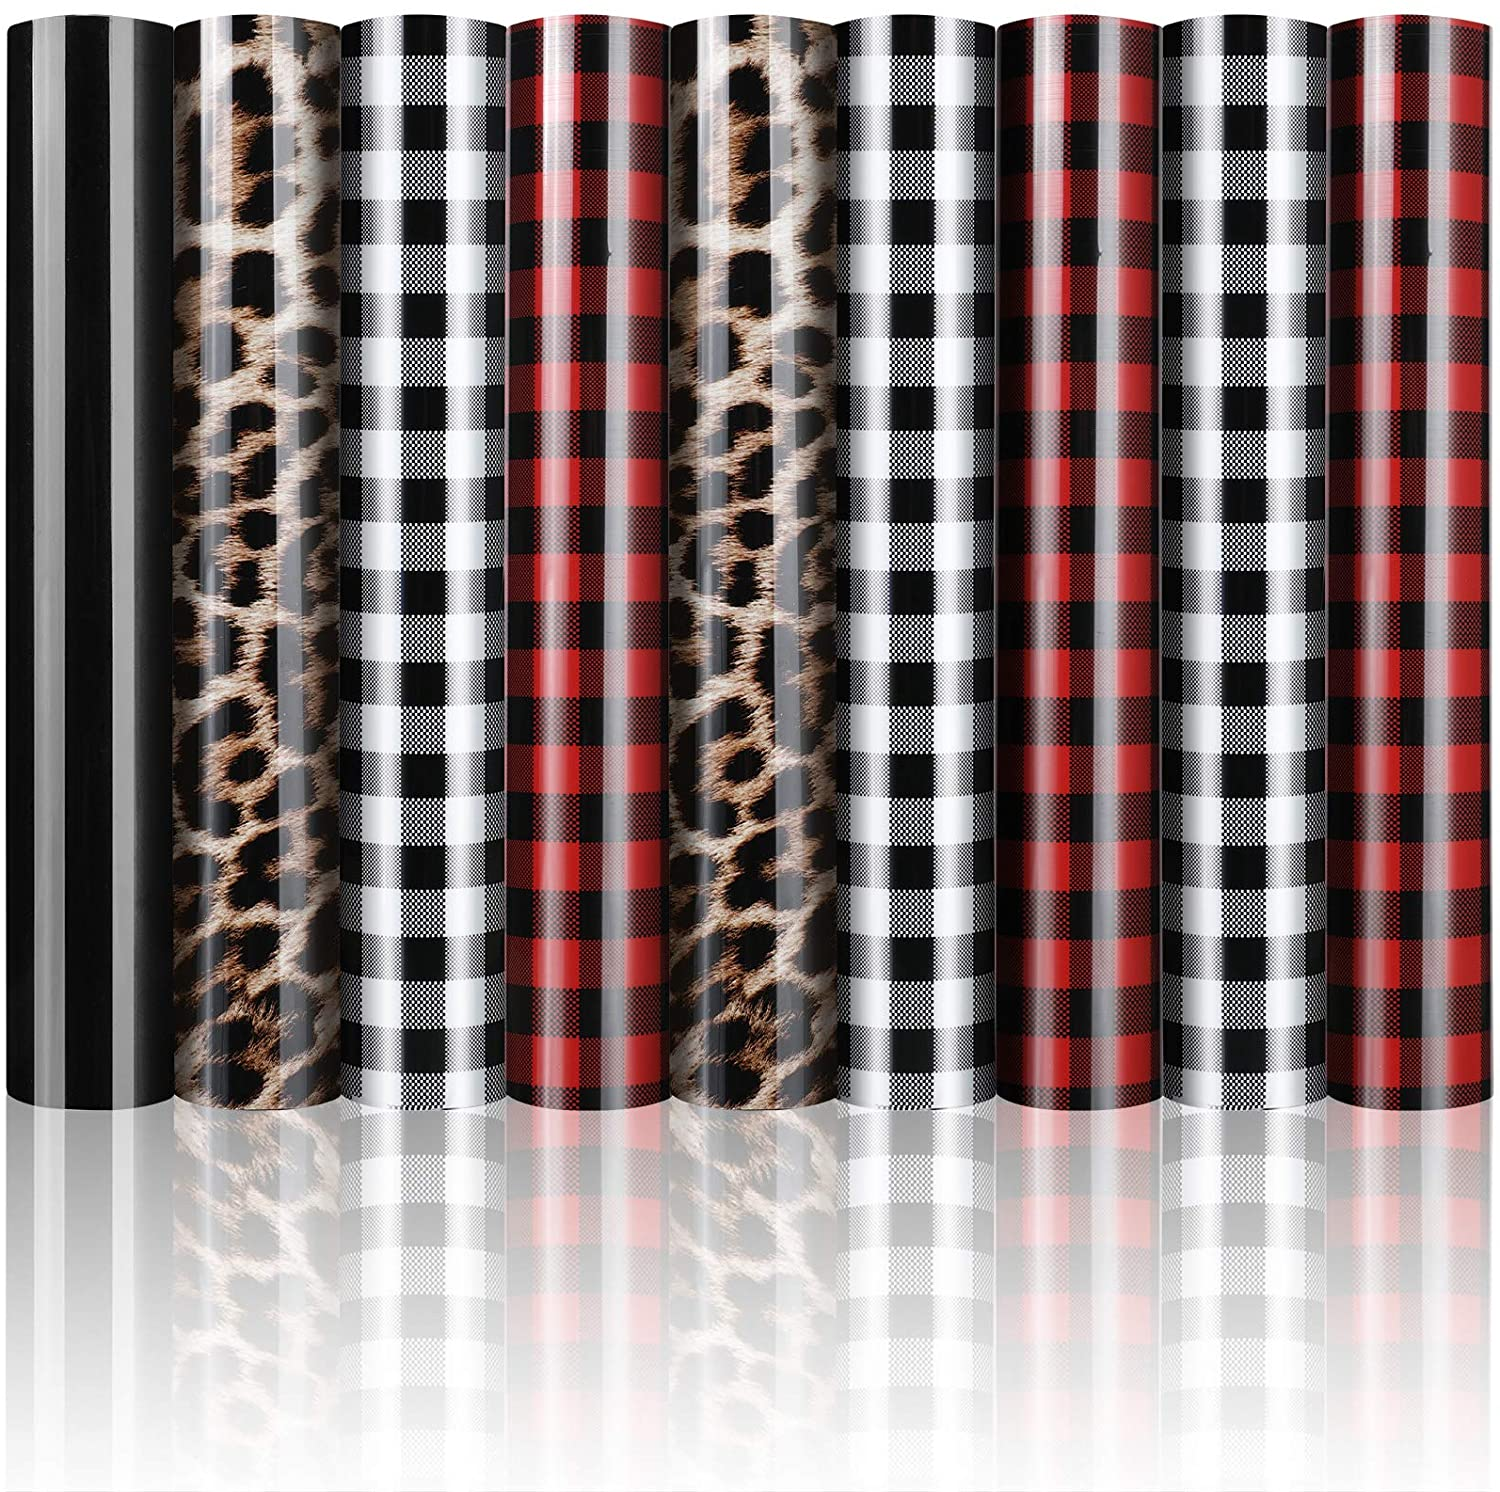 9 Sheets Christmas Buffalo Plaid Iron-on Vinyl Heat Transfer Vinyl Assorted Check Leopard Print HTV Fabric for T-Shirt Clothes Bag Hat Pillow Crafts, 12 x 10 Inch (Red, Black-White, Black, Leopard)